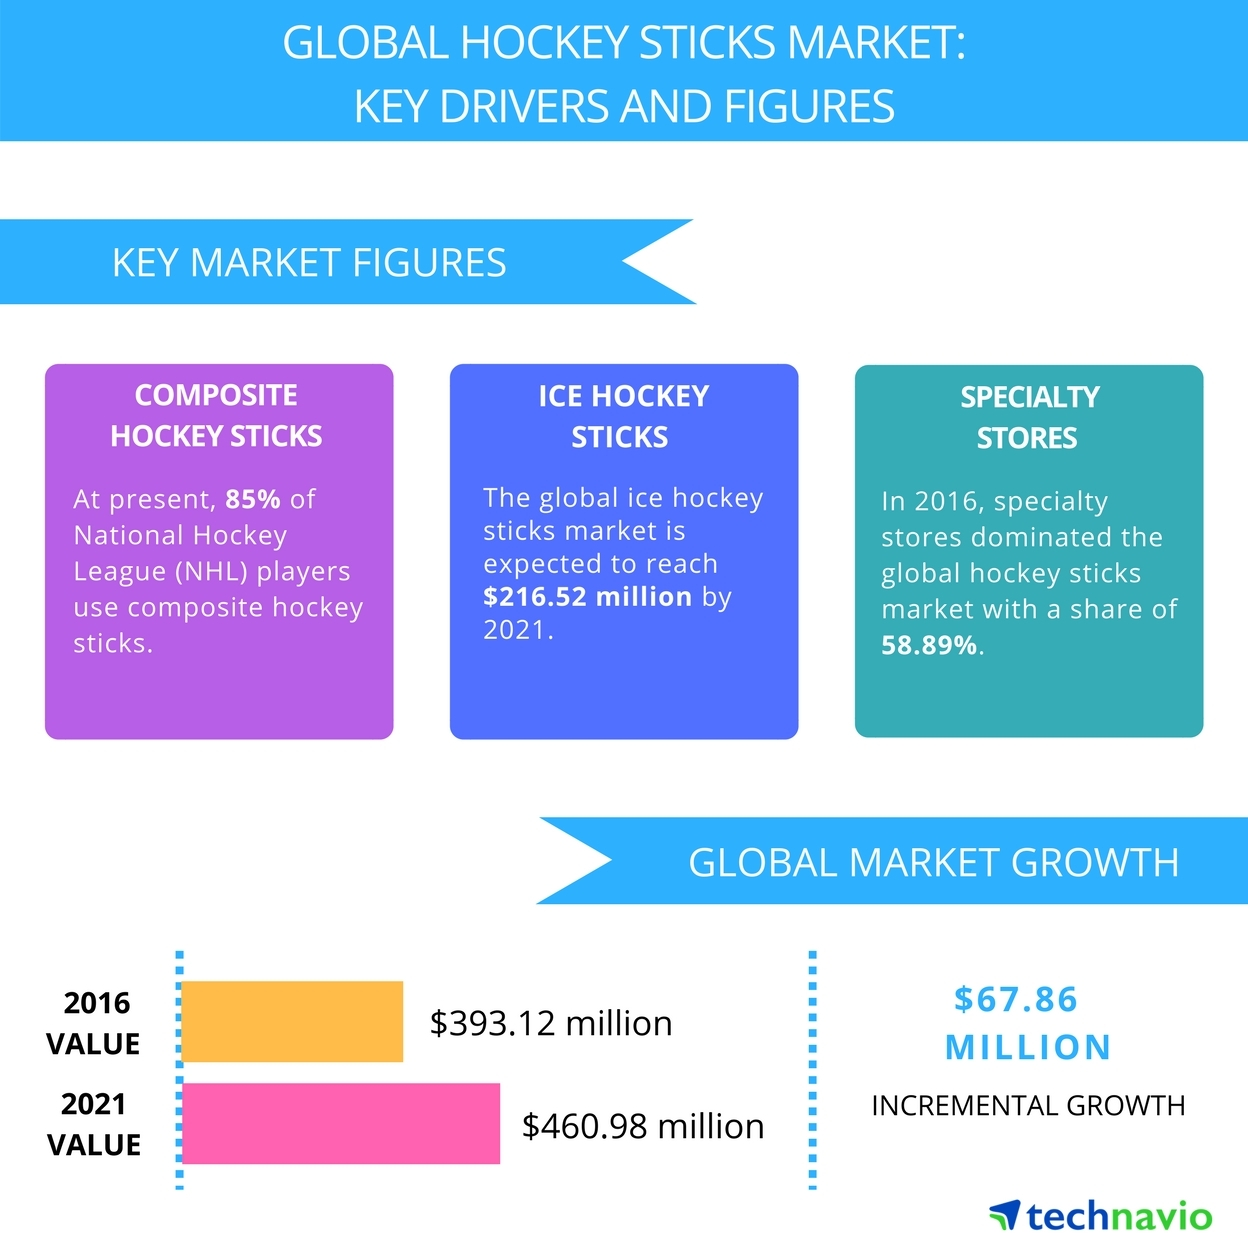 Top 3 Emerging Trends Impacting the Global Hockey Sticks Market from